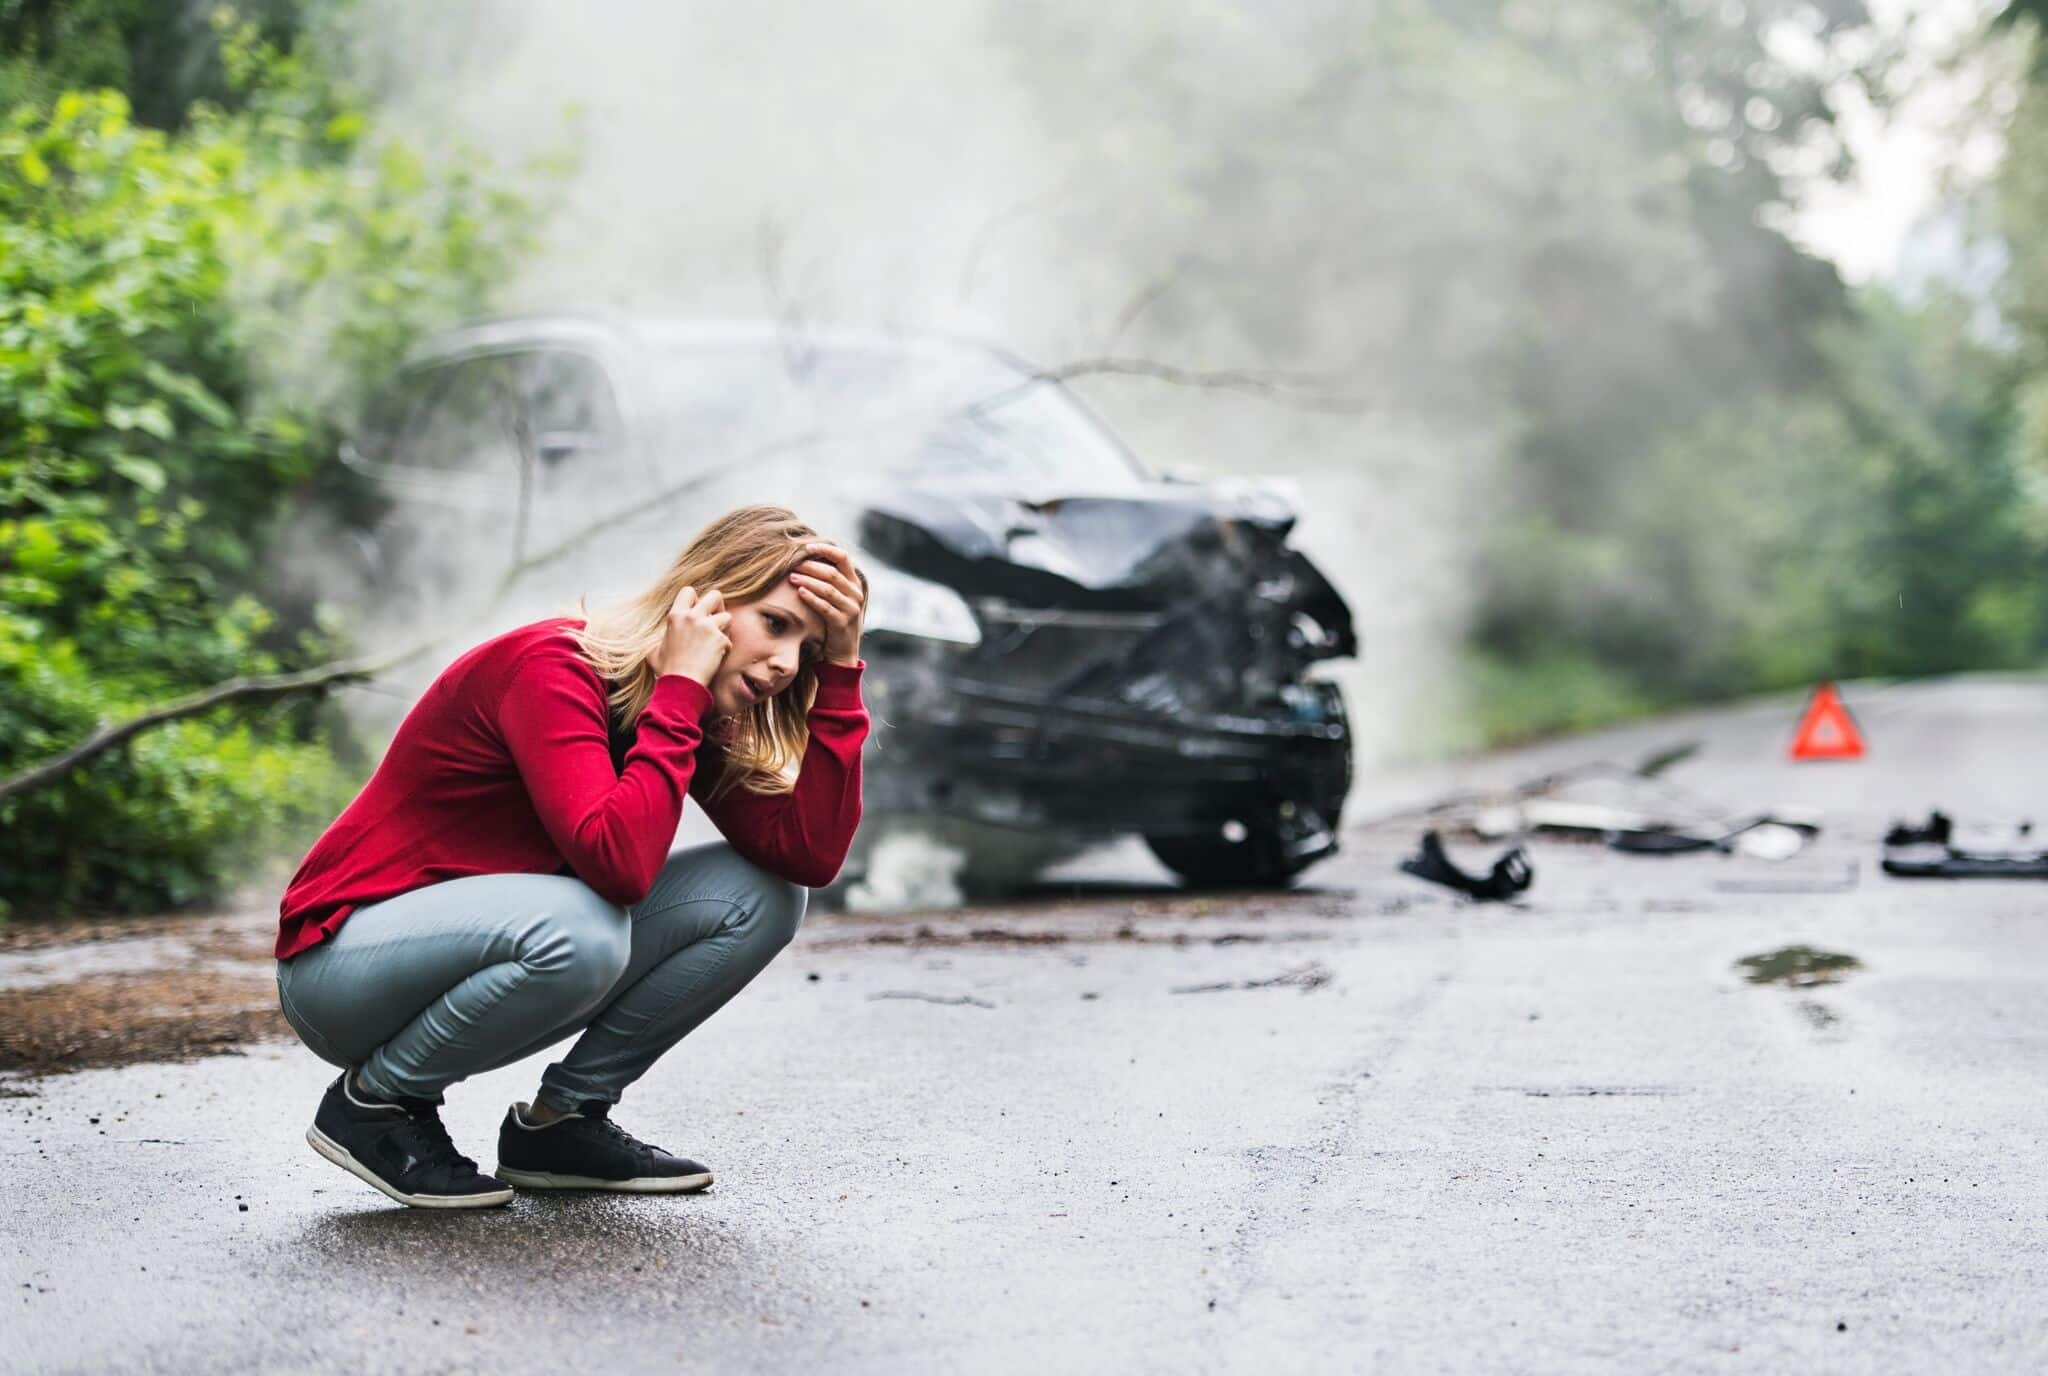 What happens if I get into a car accident and there's cannabis in my system?